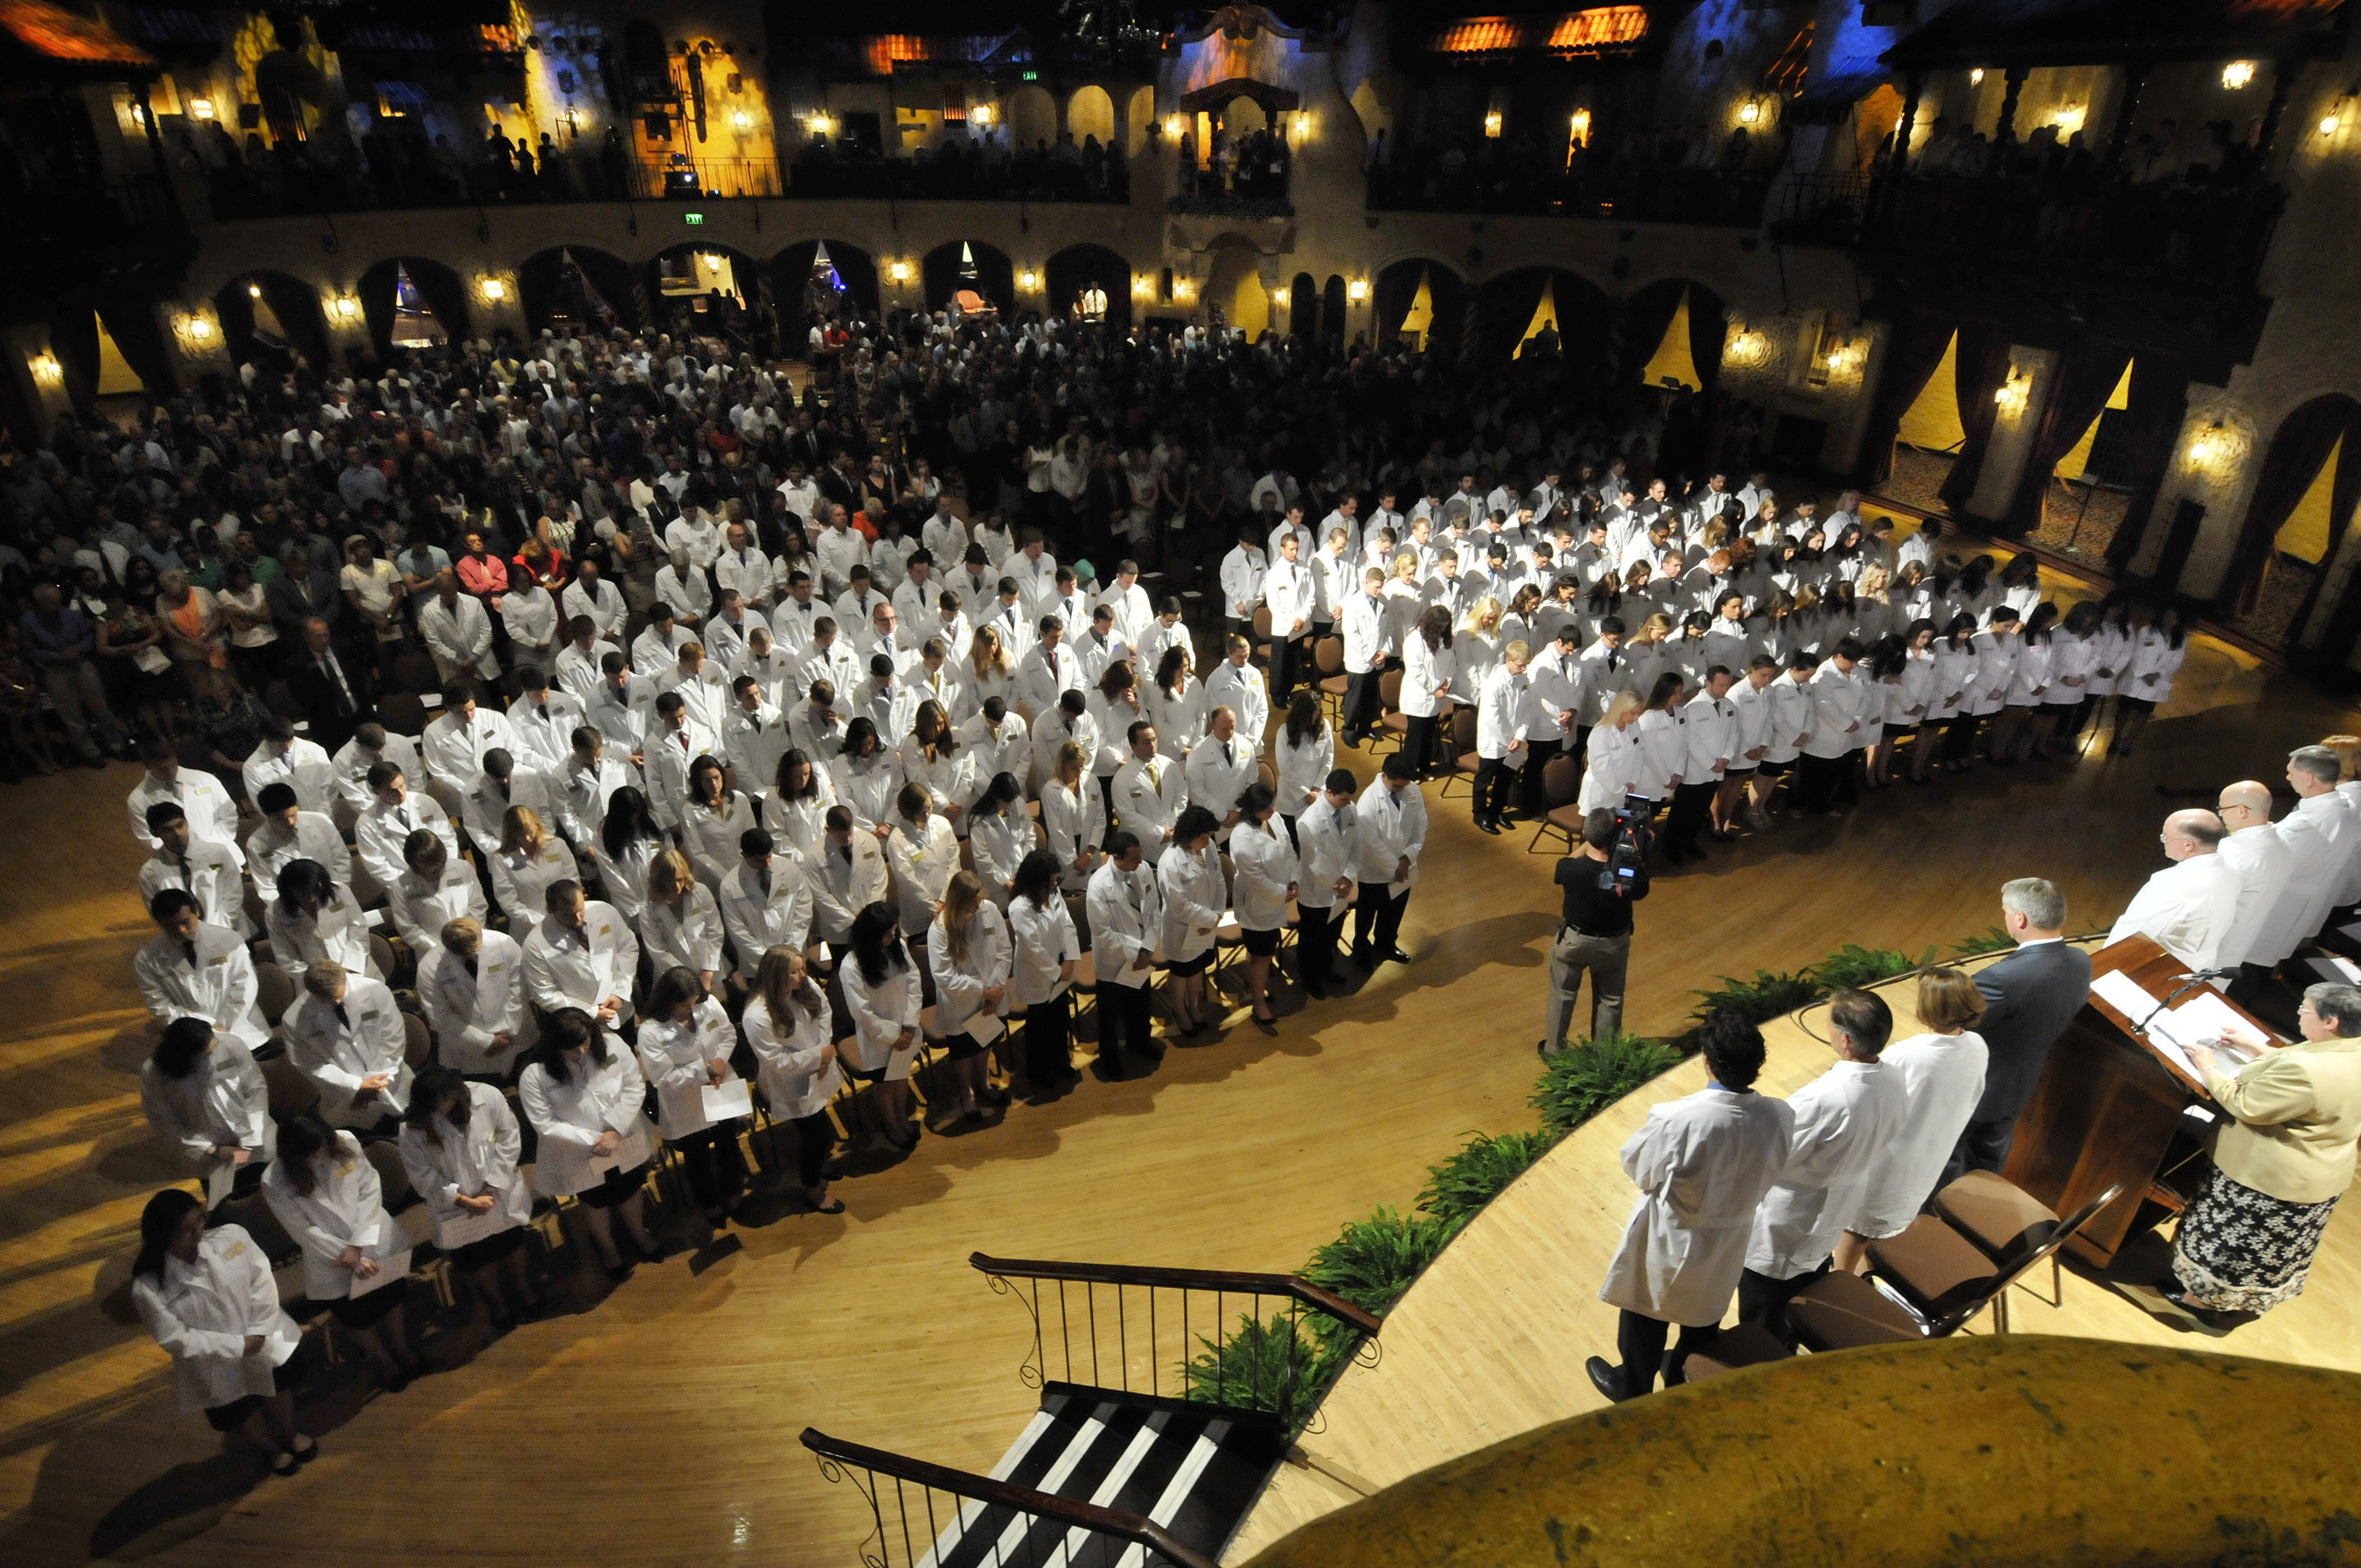 Marian University College of Osteopathic Medicine welcomes new students